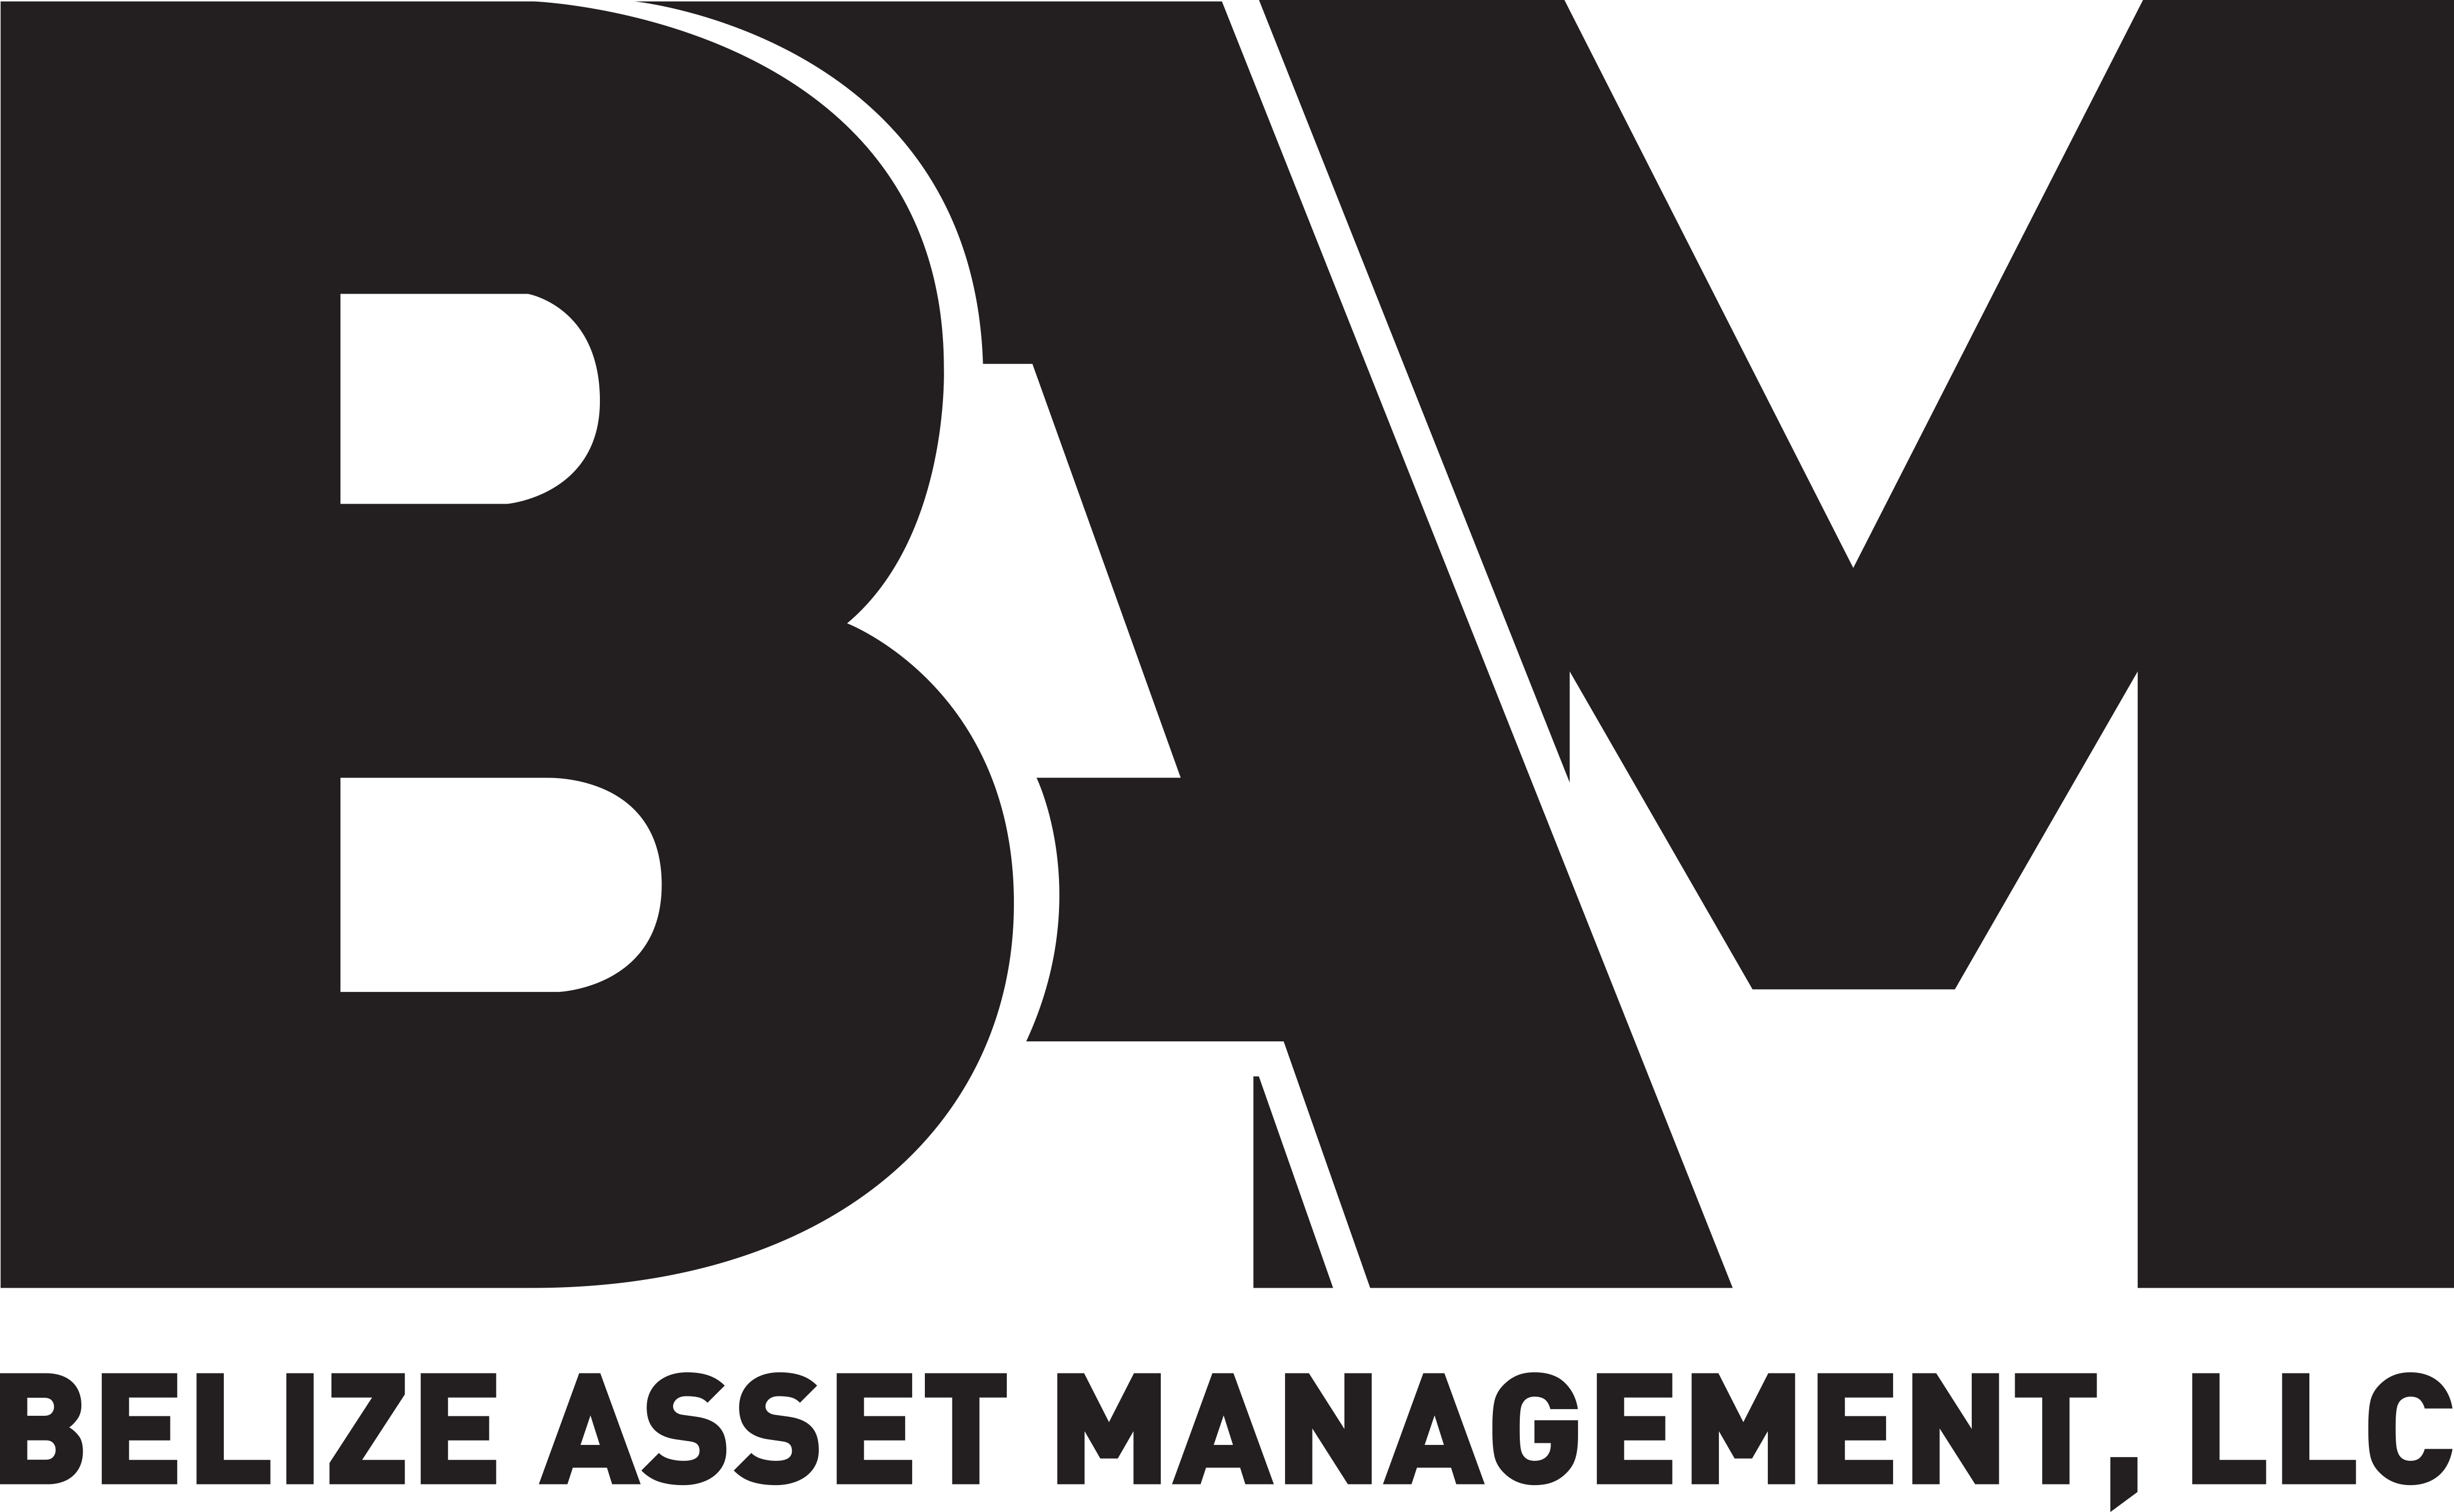 Belize Asset Management - John Turley